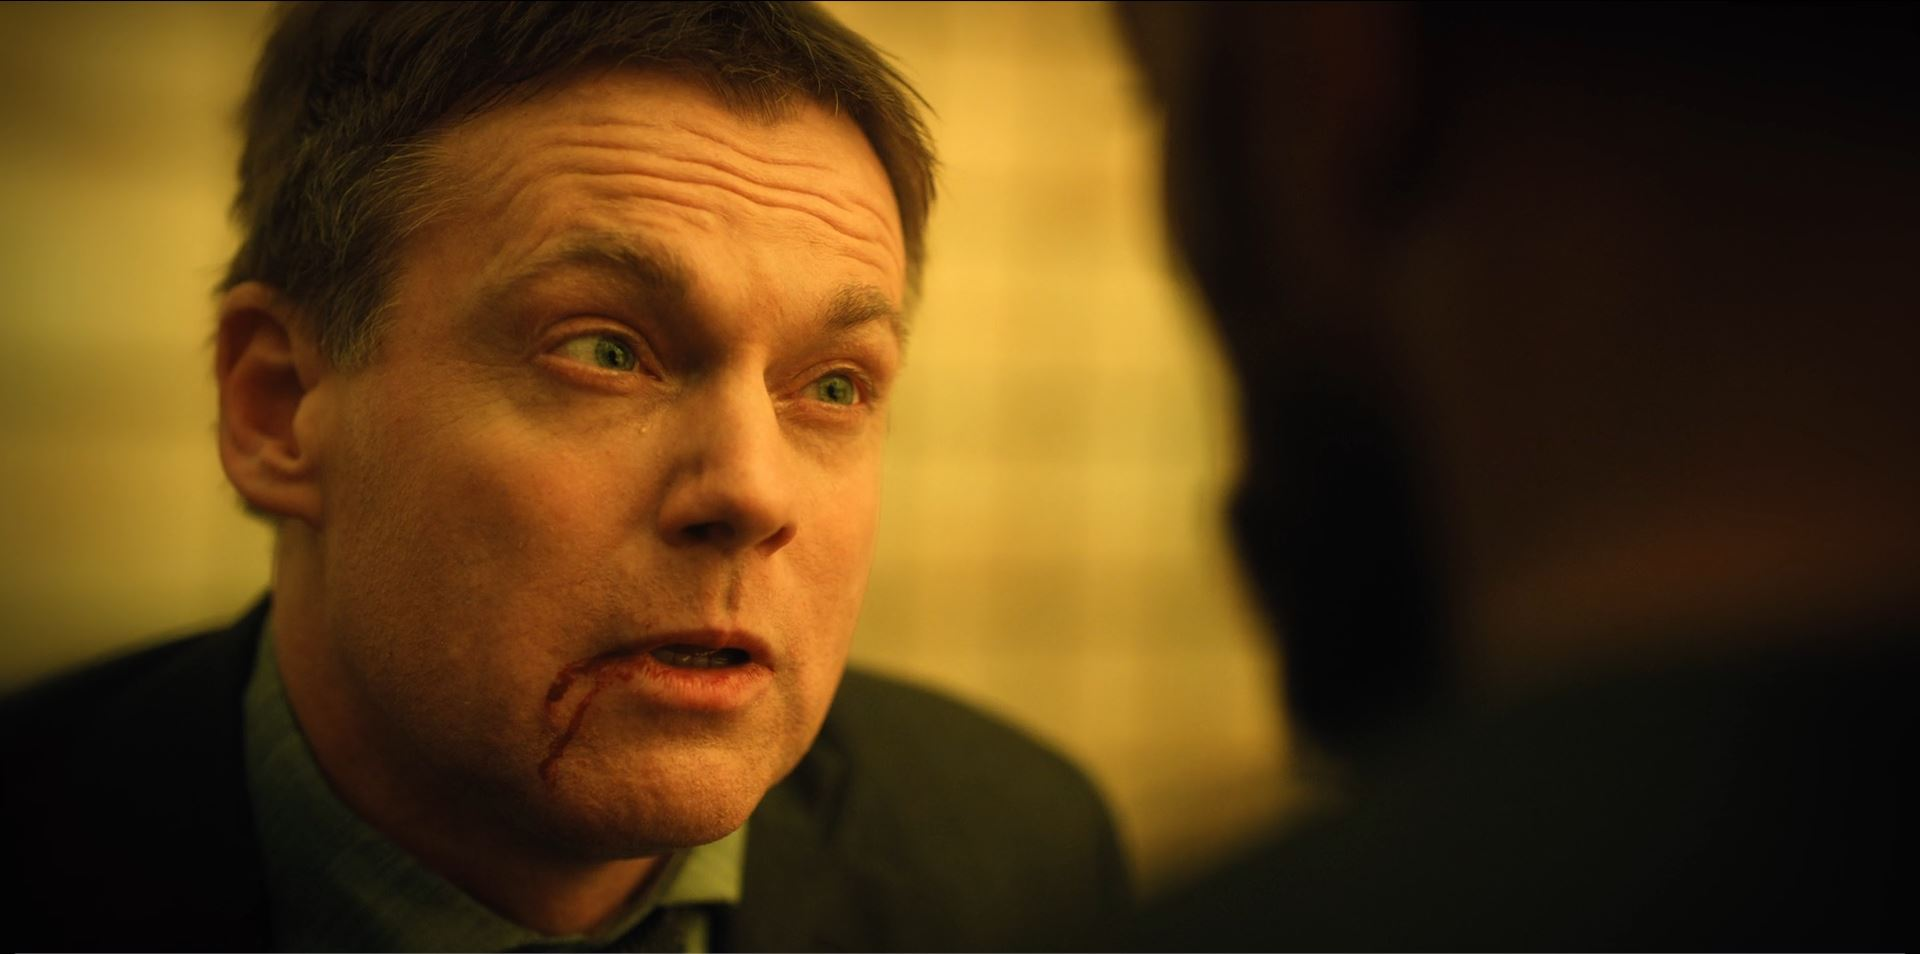 Altered Carbon Season 2 Review - Michael Shanks as Horace Axley